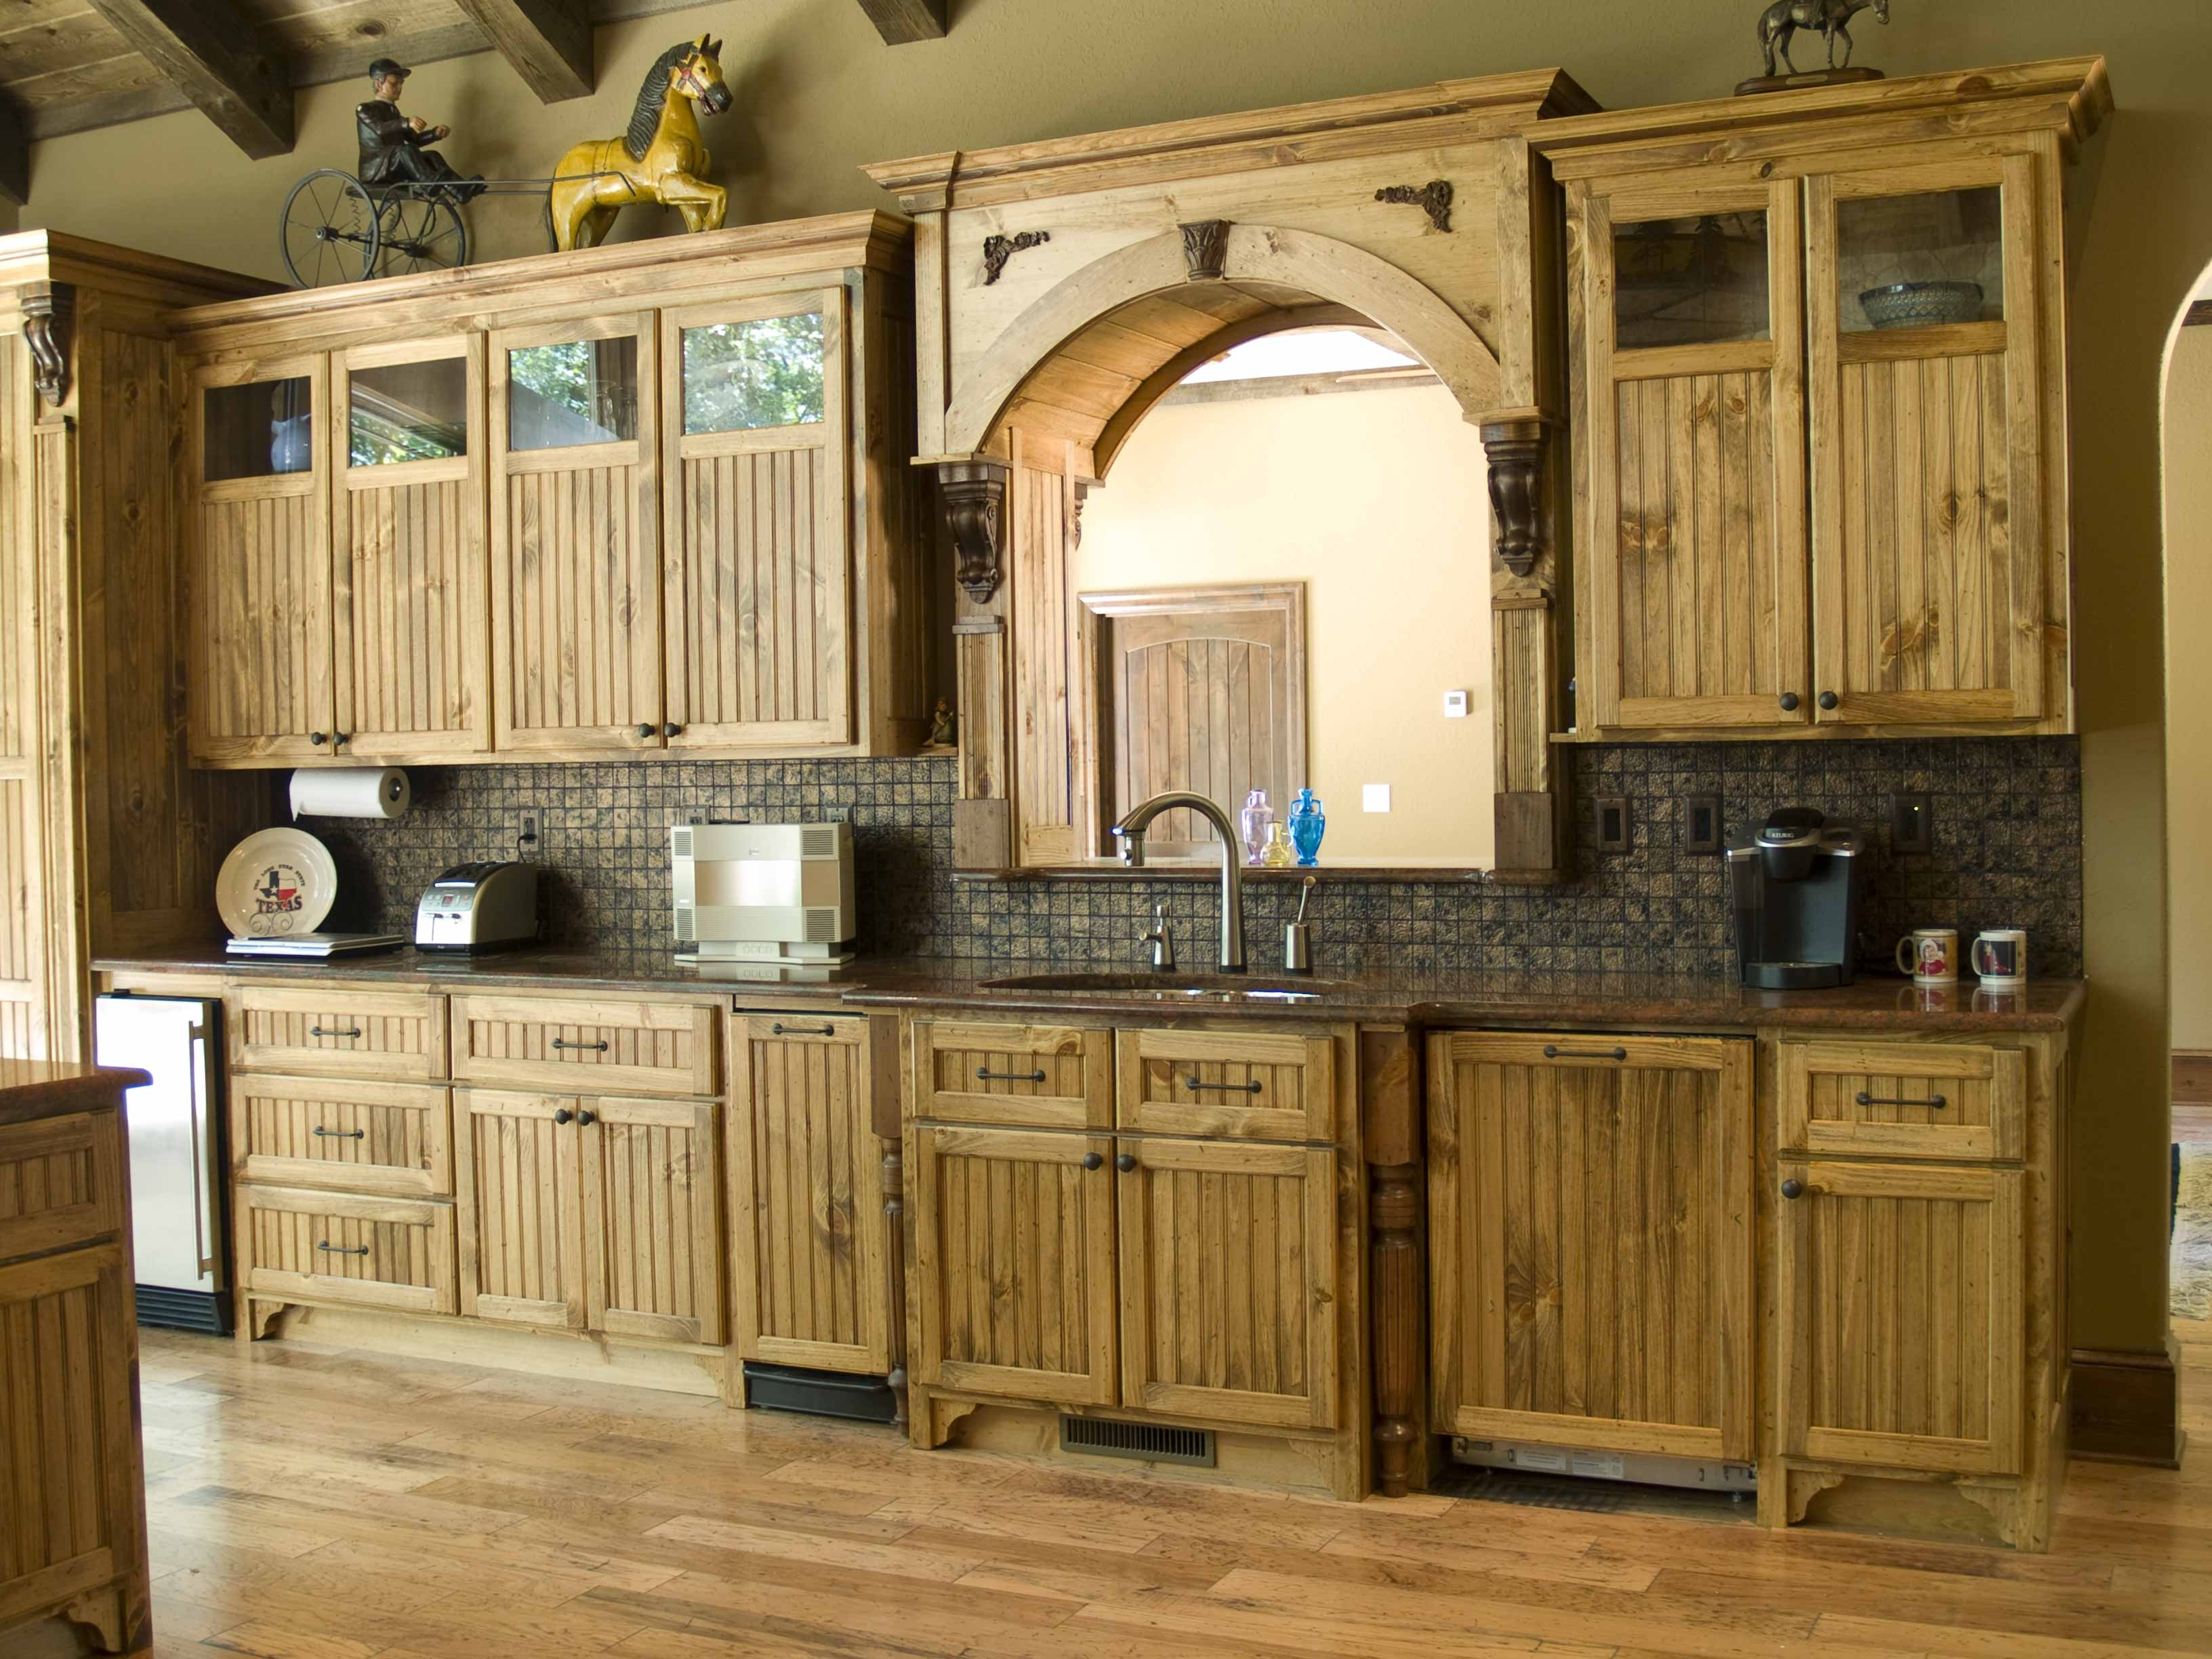 Kitchen Cabinets Rustic Look